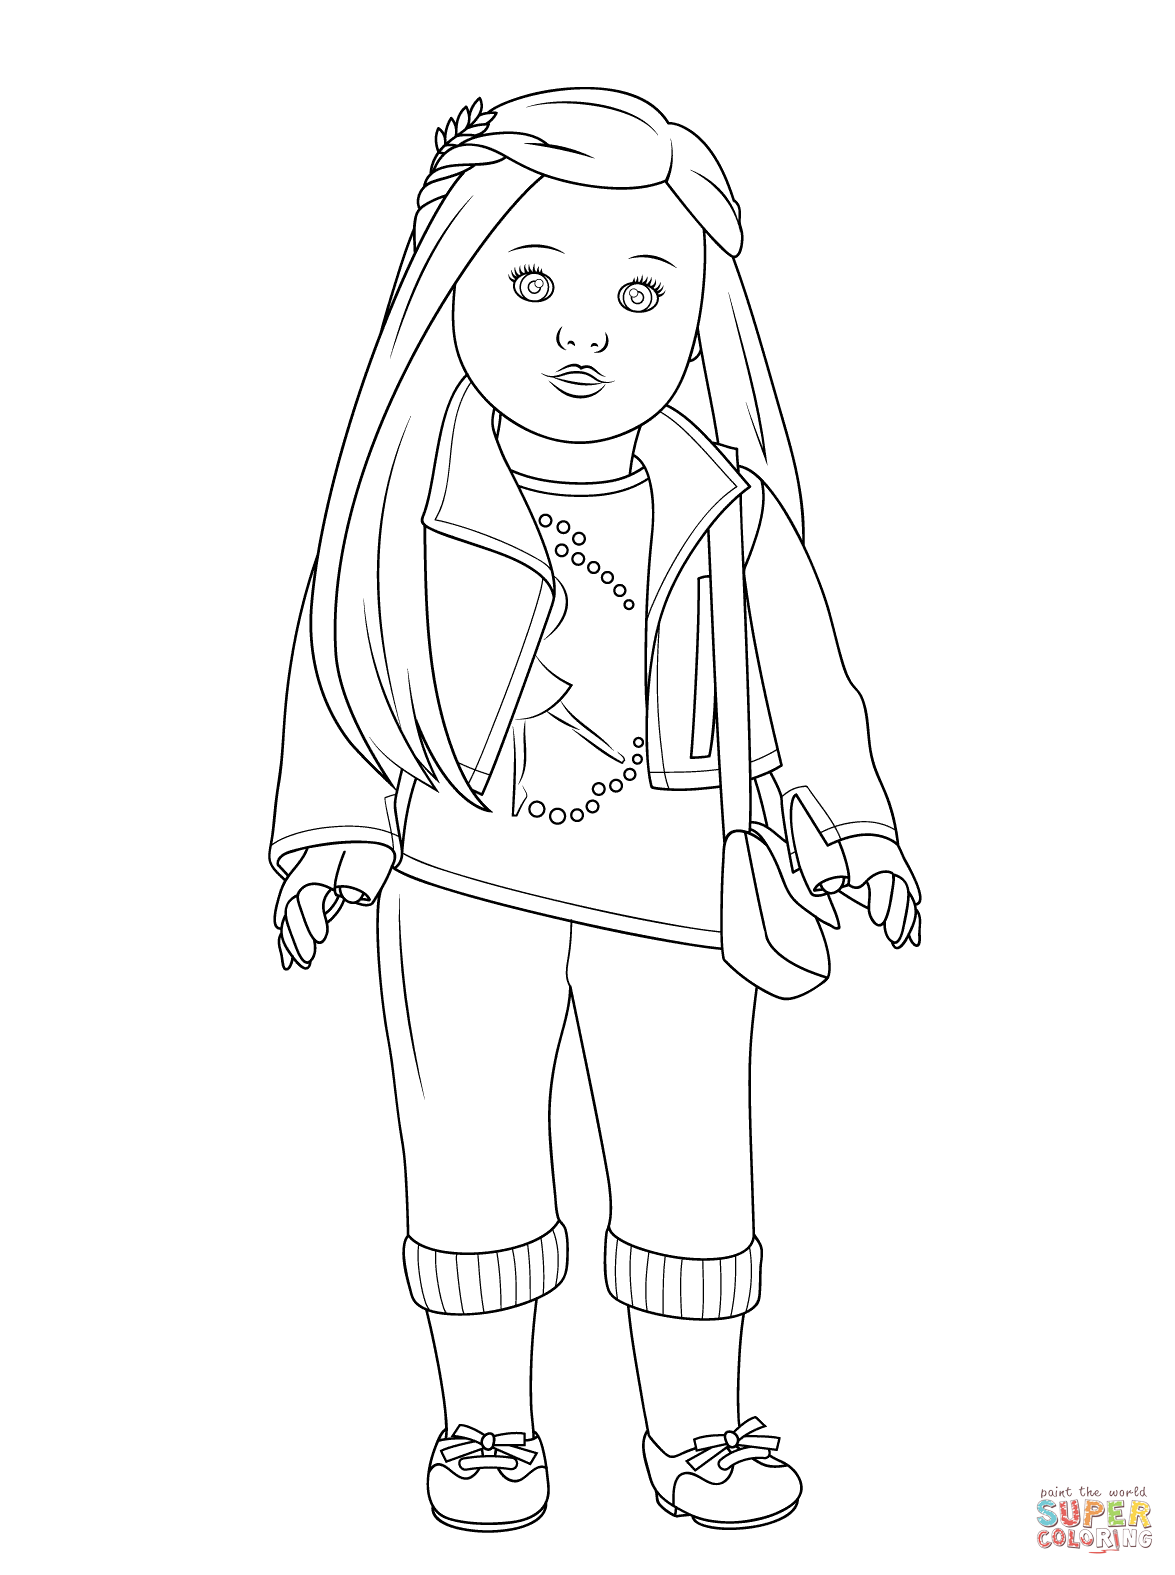 dolls coloring pages doll coloring pages printable at getdrawings free download dolls coloring pages